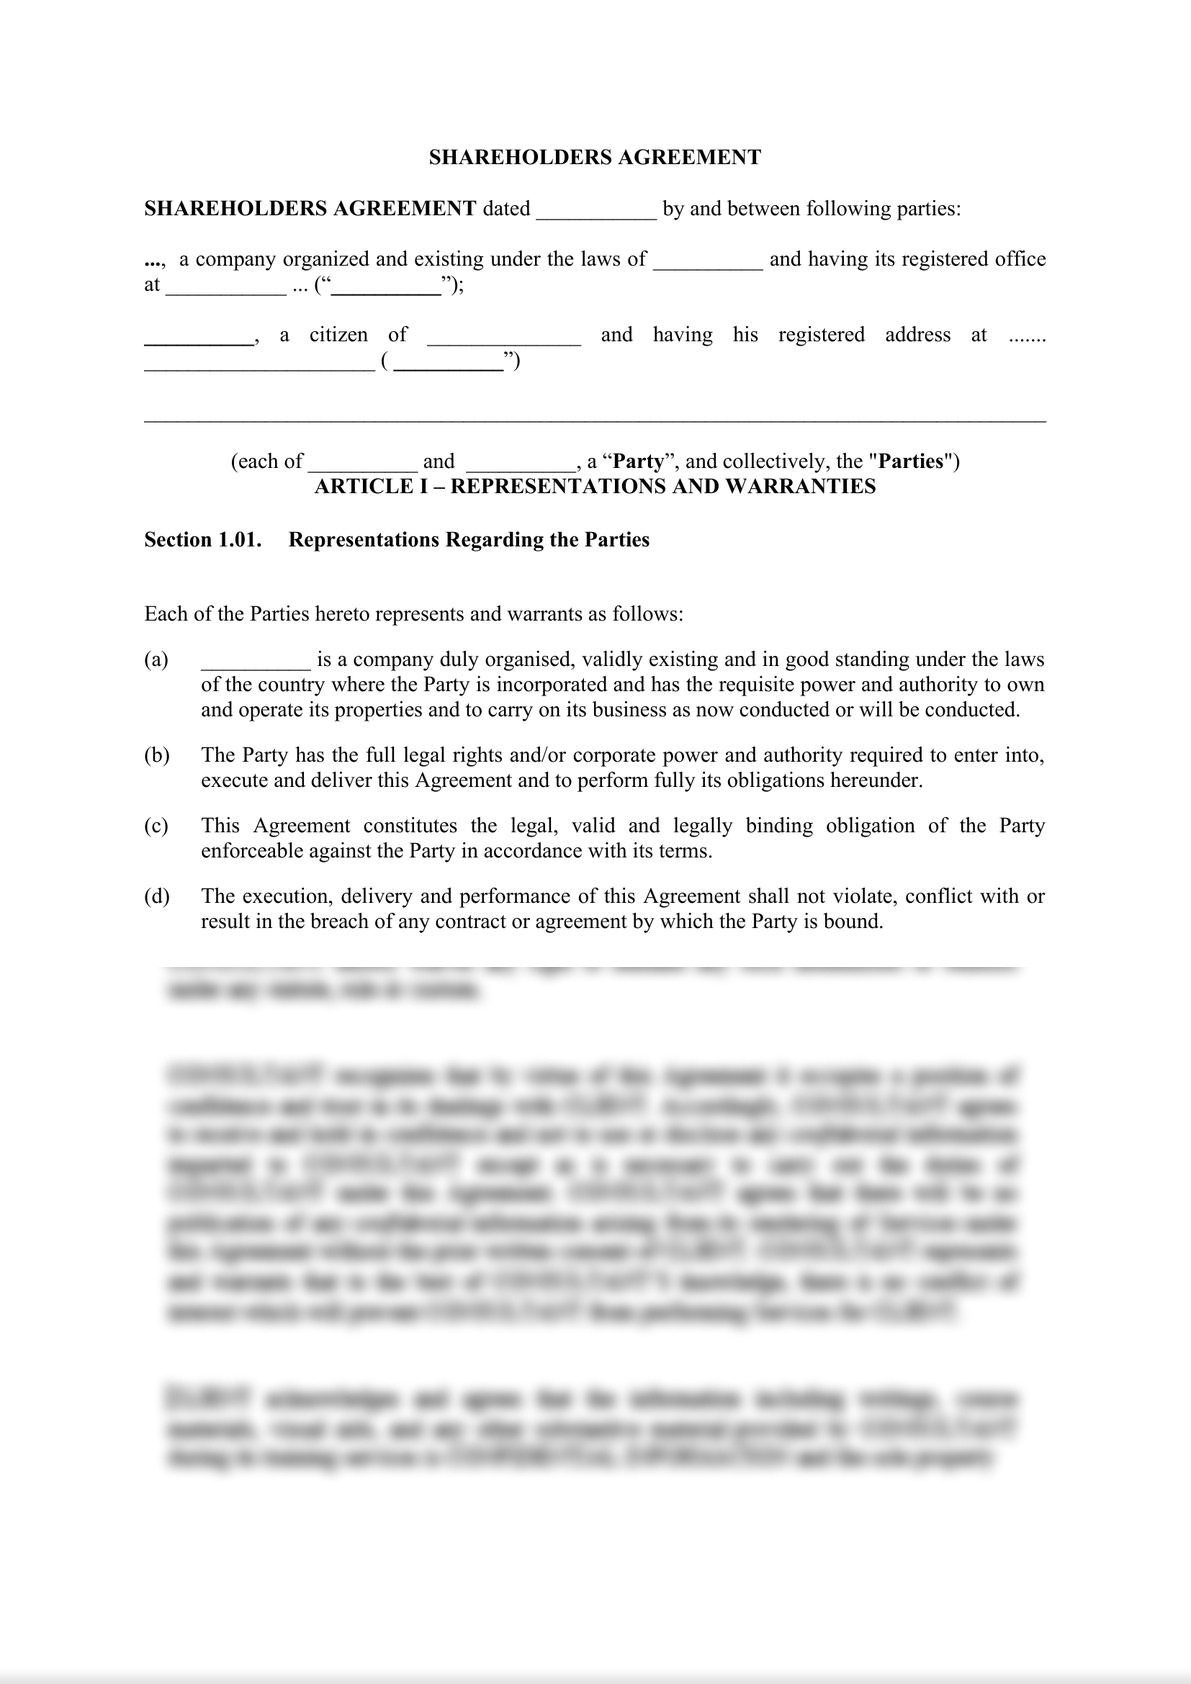 Shareholders agreement-1